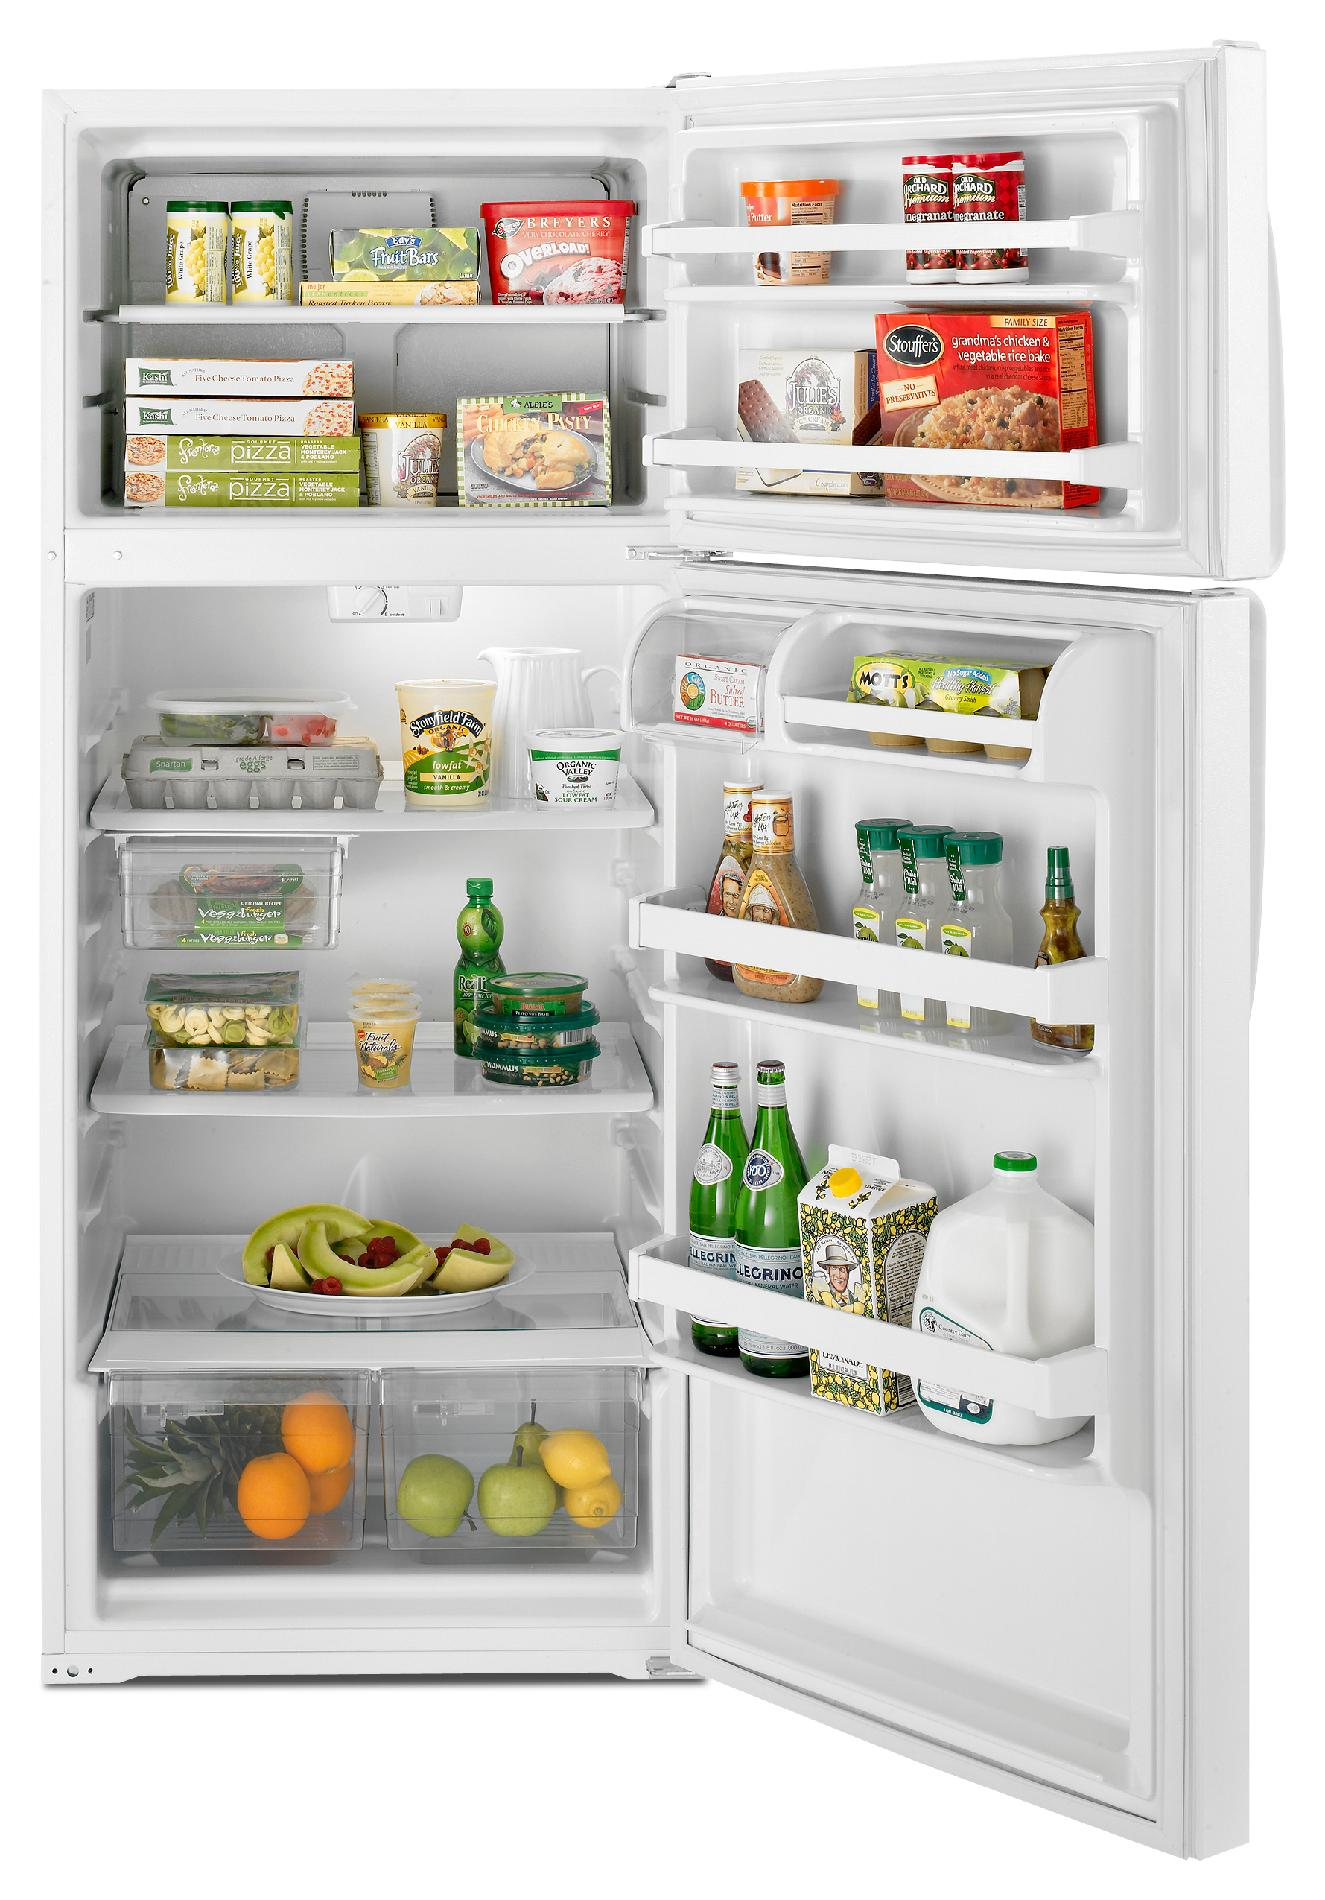 Whirlpool 17.6 cu. ft. Top-Freezer Refrigerator - White